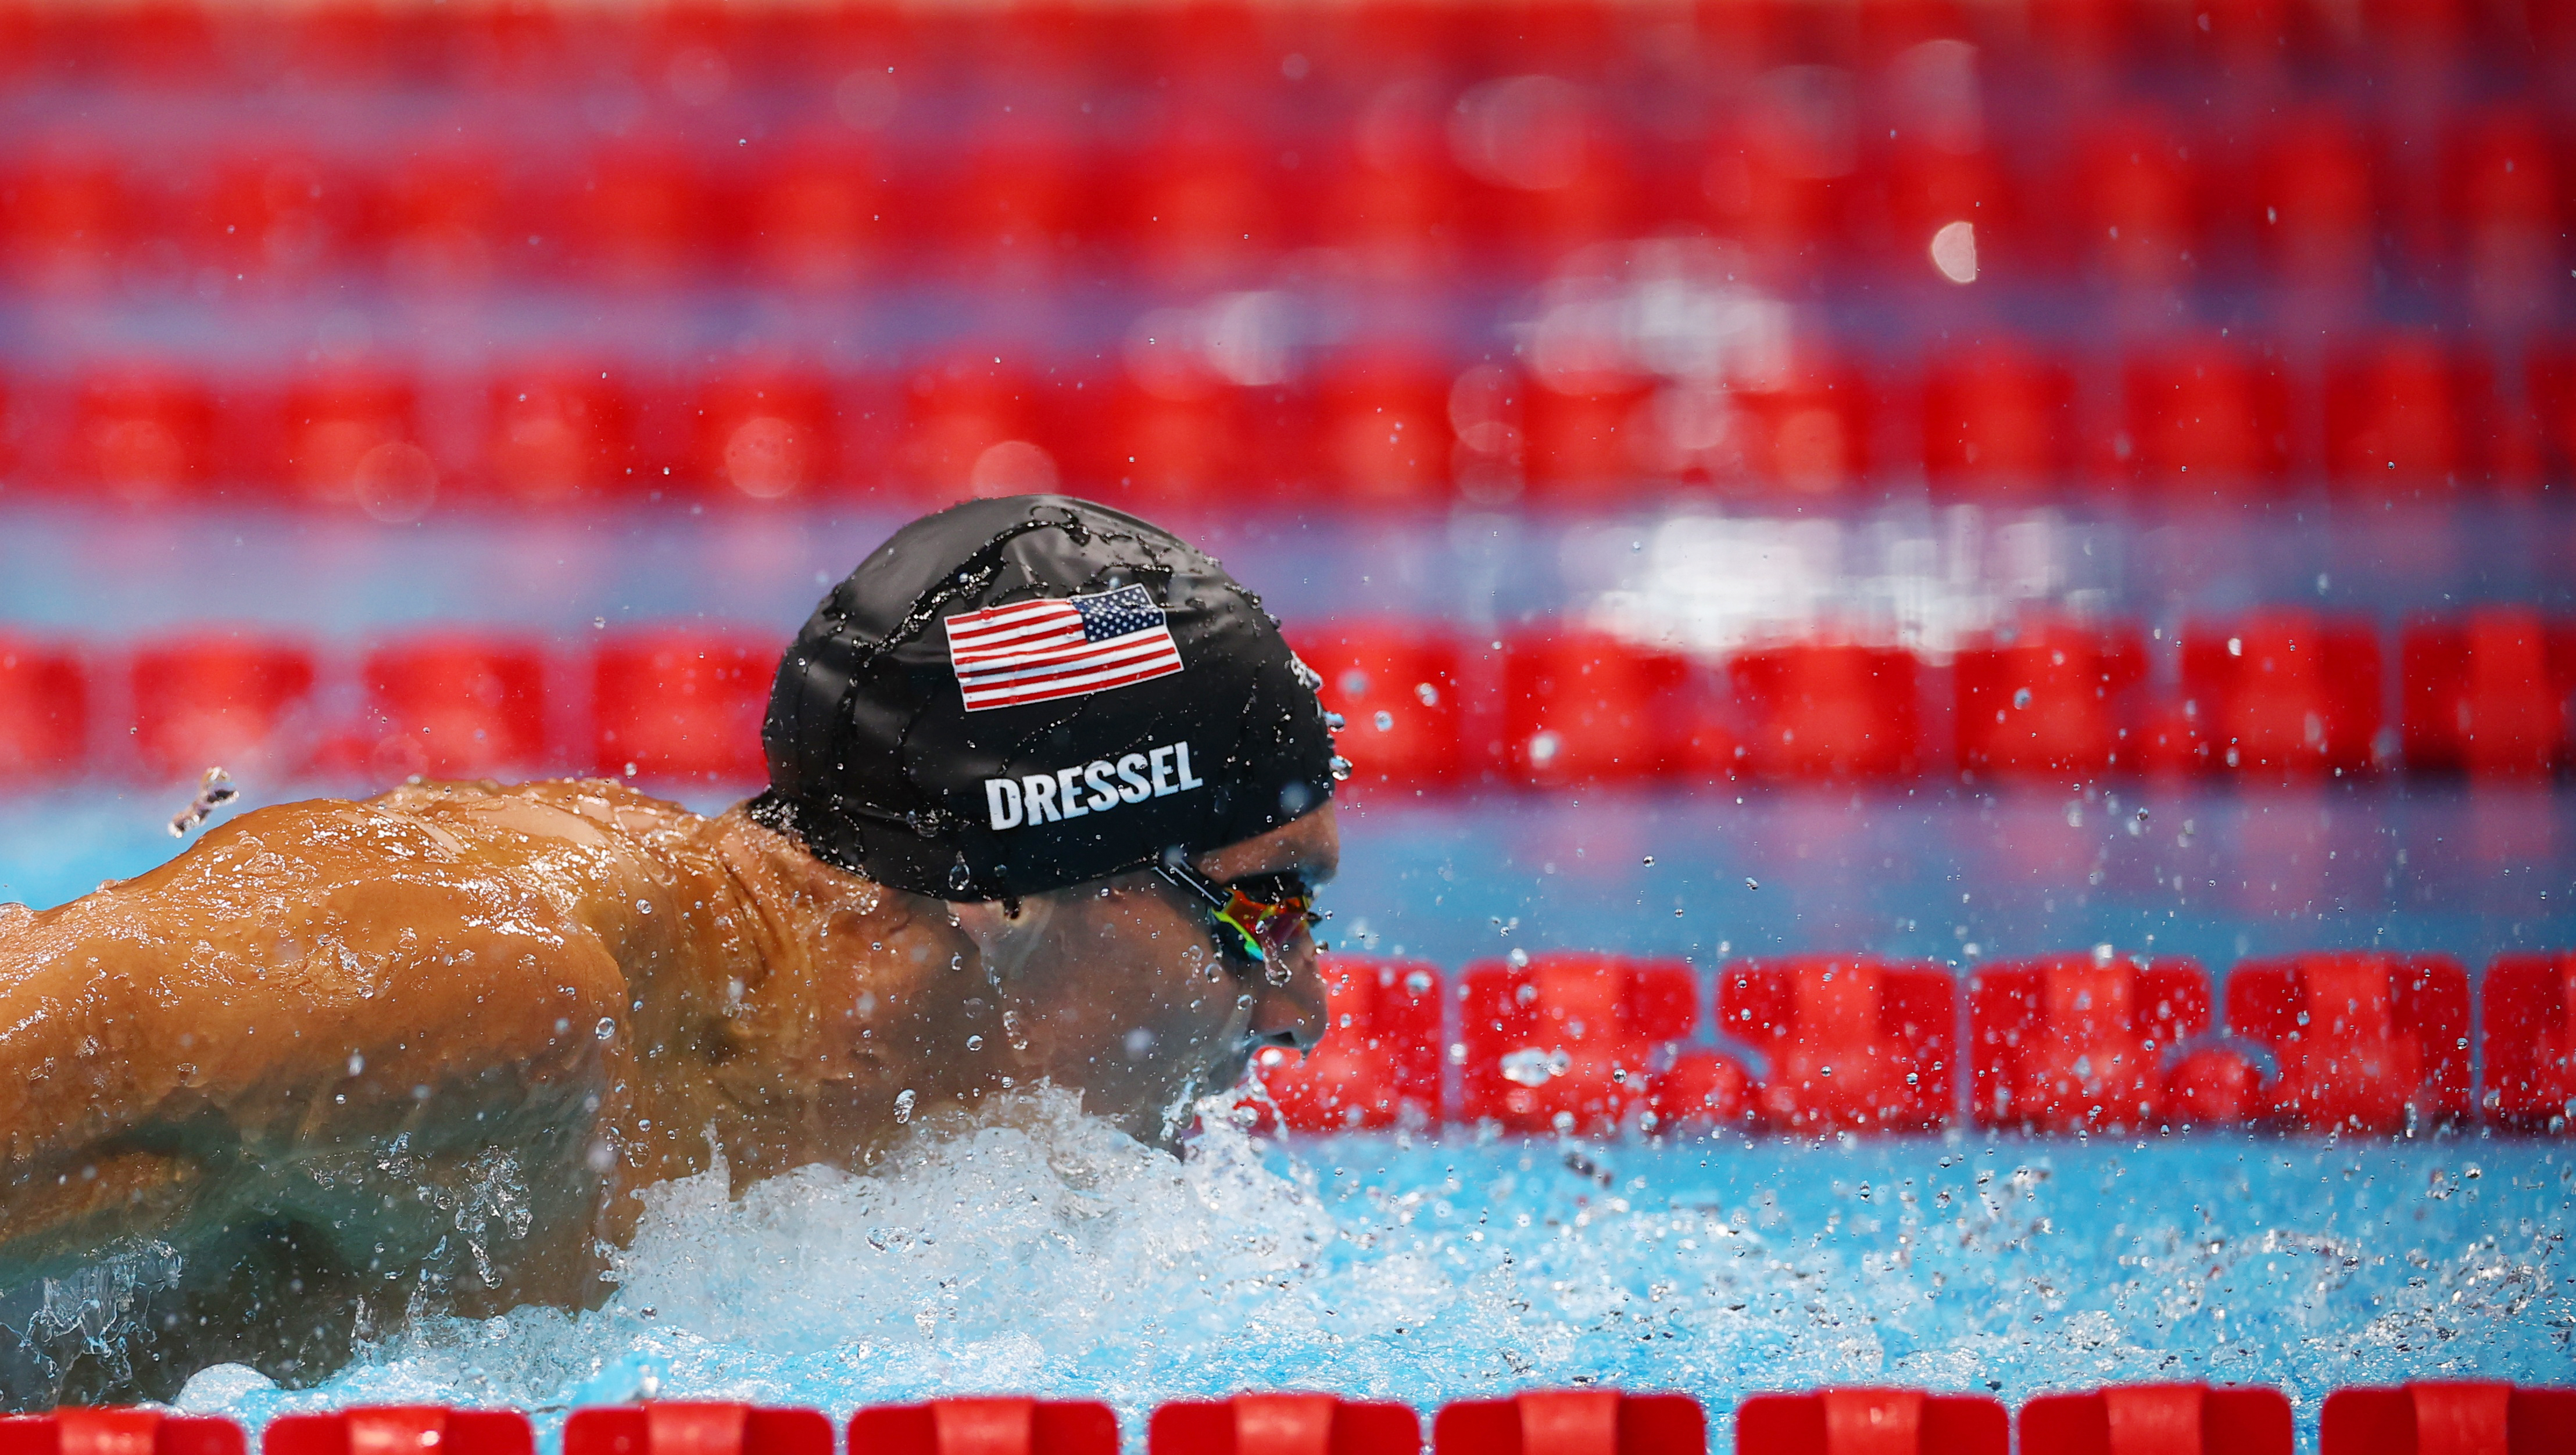 Tokyo 2020 Olympics - Swimming - Men's 100m Butterfly - Semifinal 2  - Tokyo Aquatics Centre - Tokyo, Japan - July 30, 2021. Caeleb Dressel of the United States in action REUTERS/Stefan Wermuth